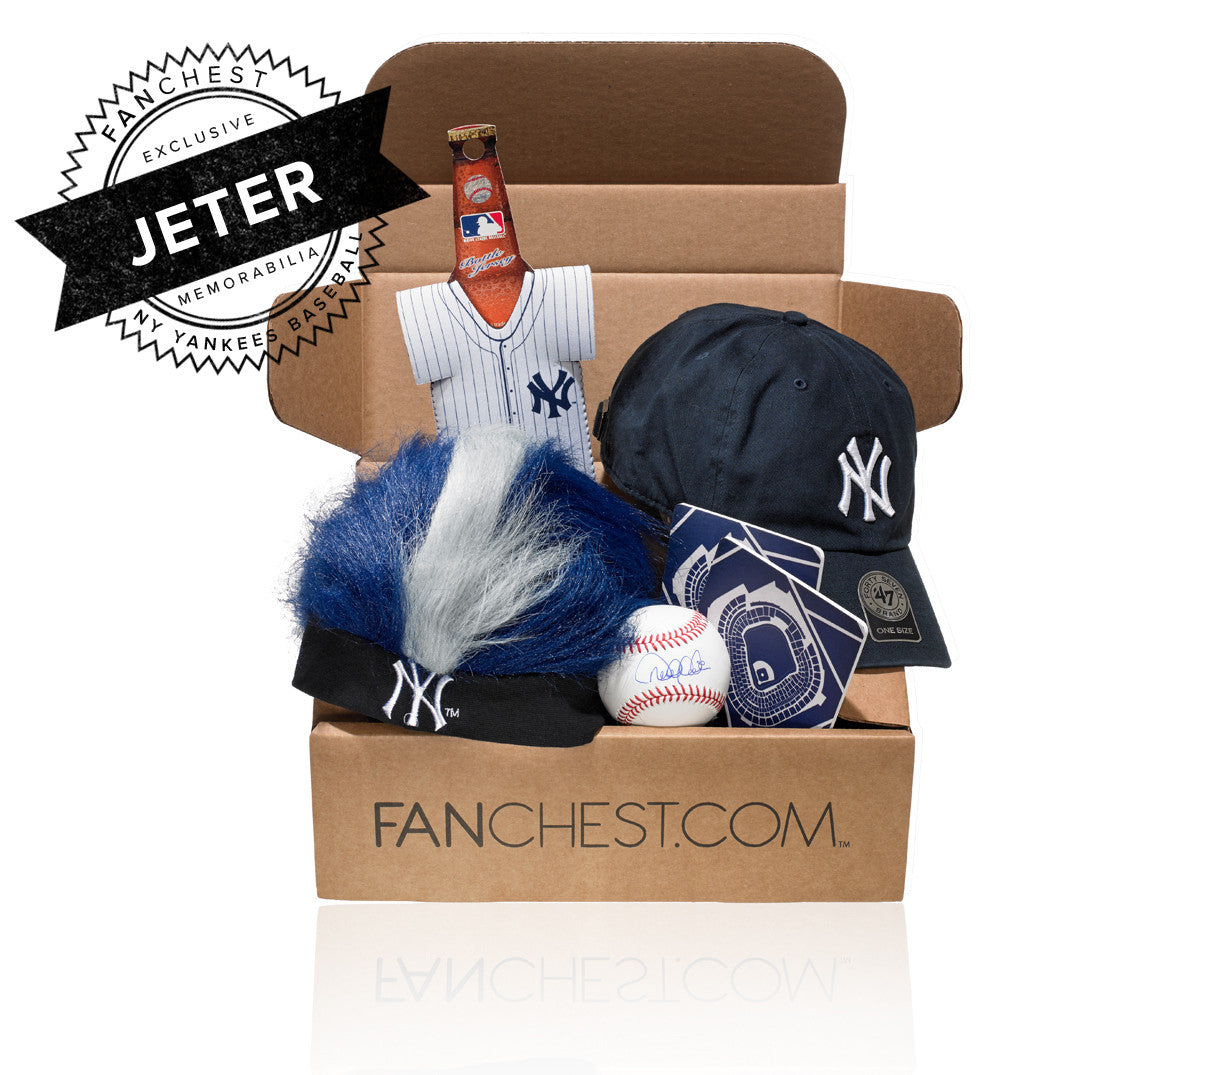 Derek Jeter FANCHEST